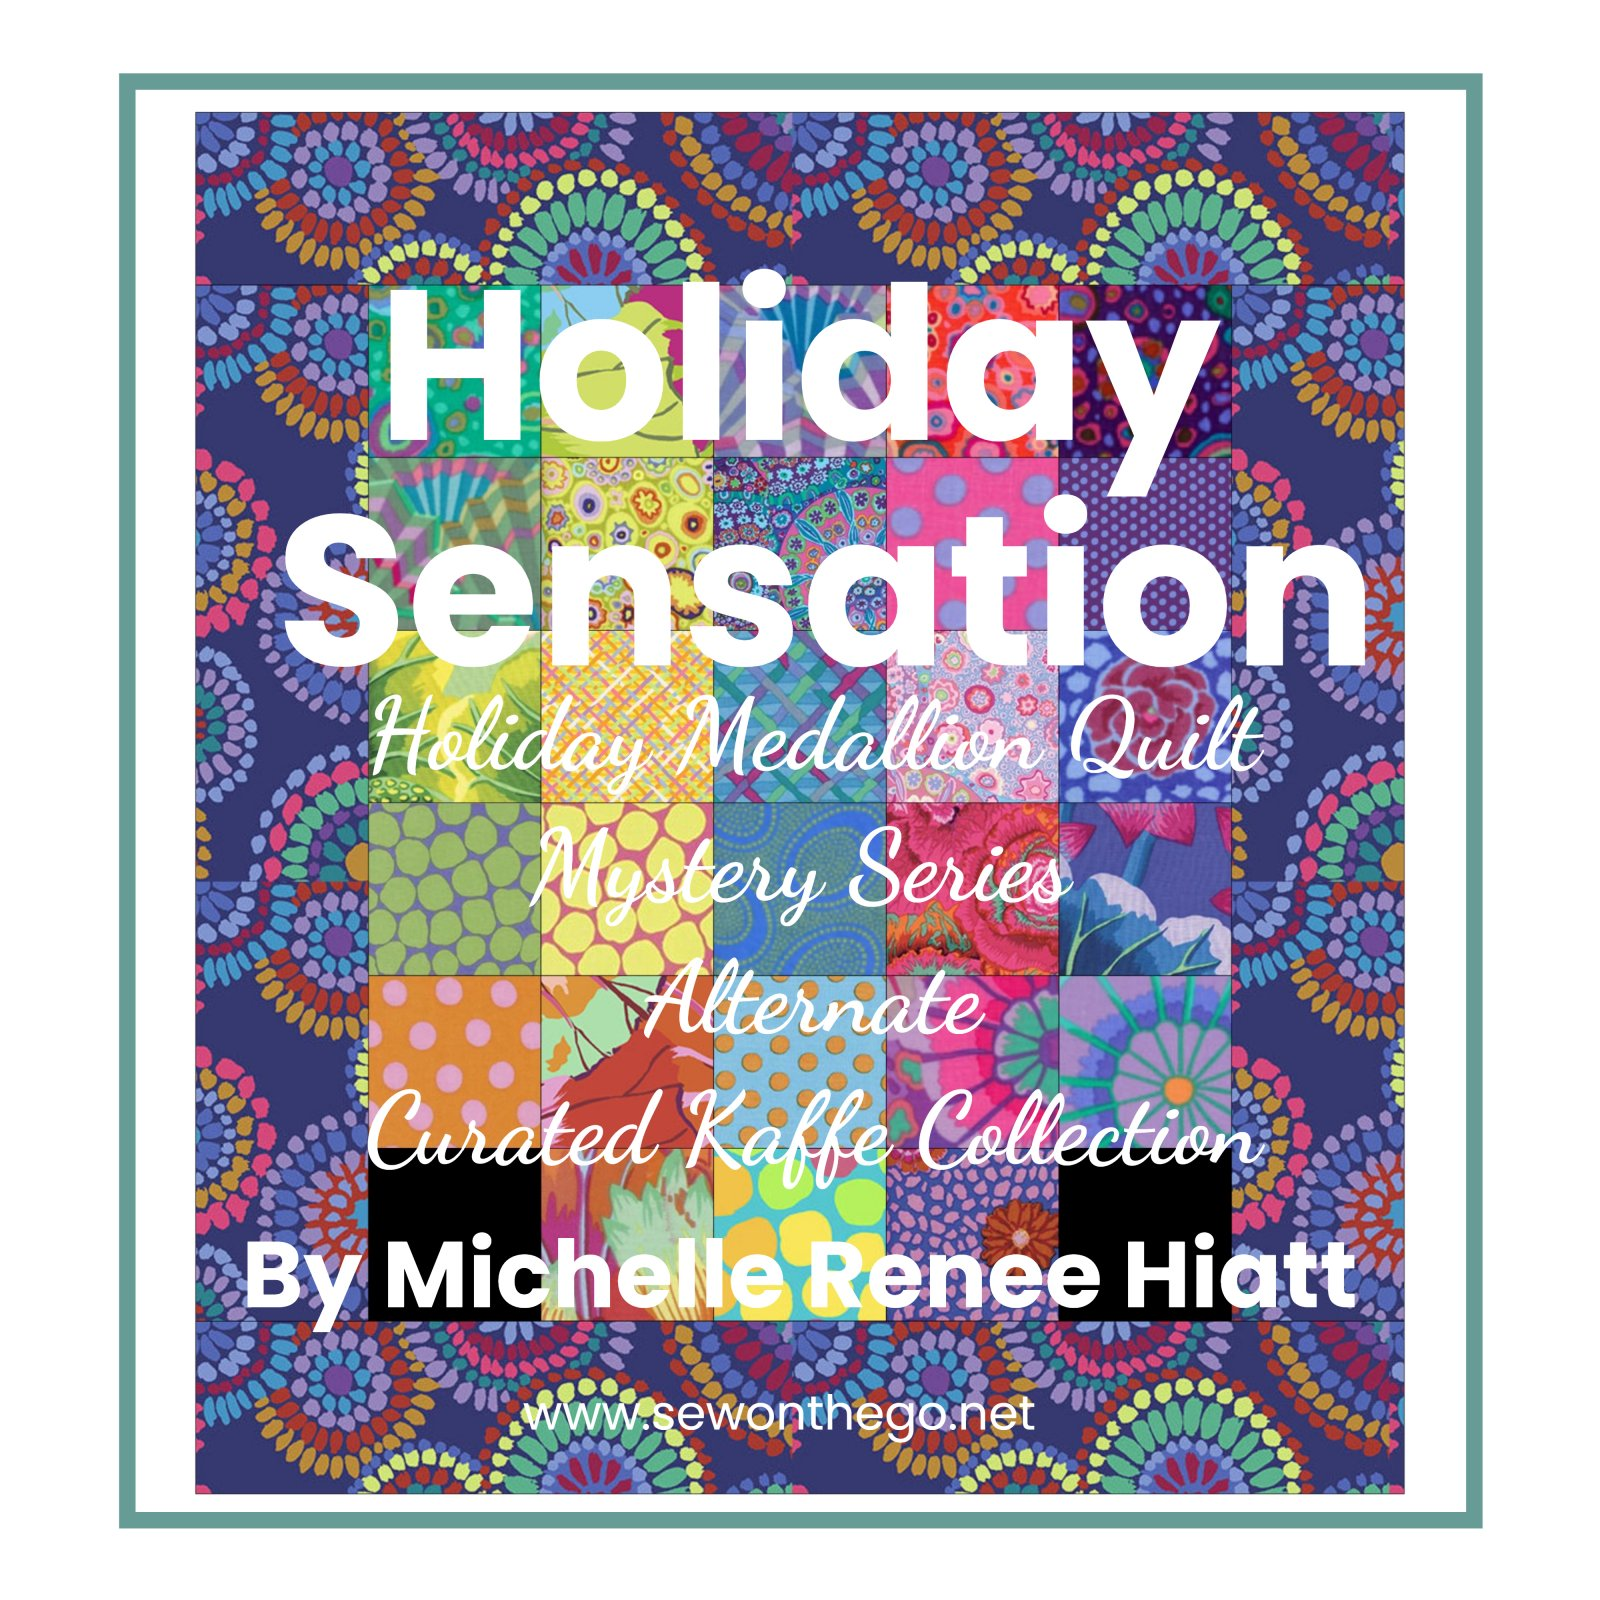 Holiday Sensation Mystery Quilt - Alternate Curated Kaffe Collective by Michelle MODERN KIT